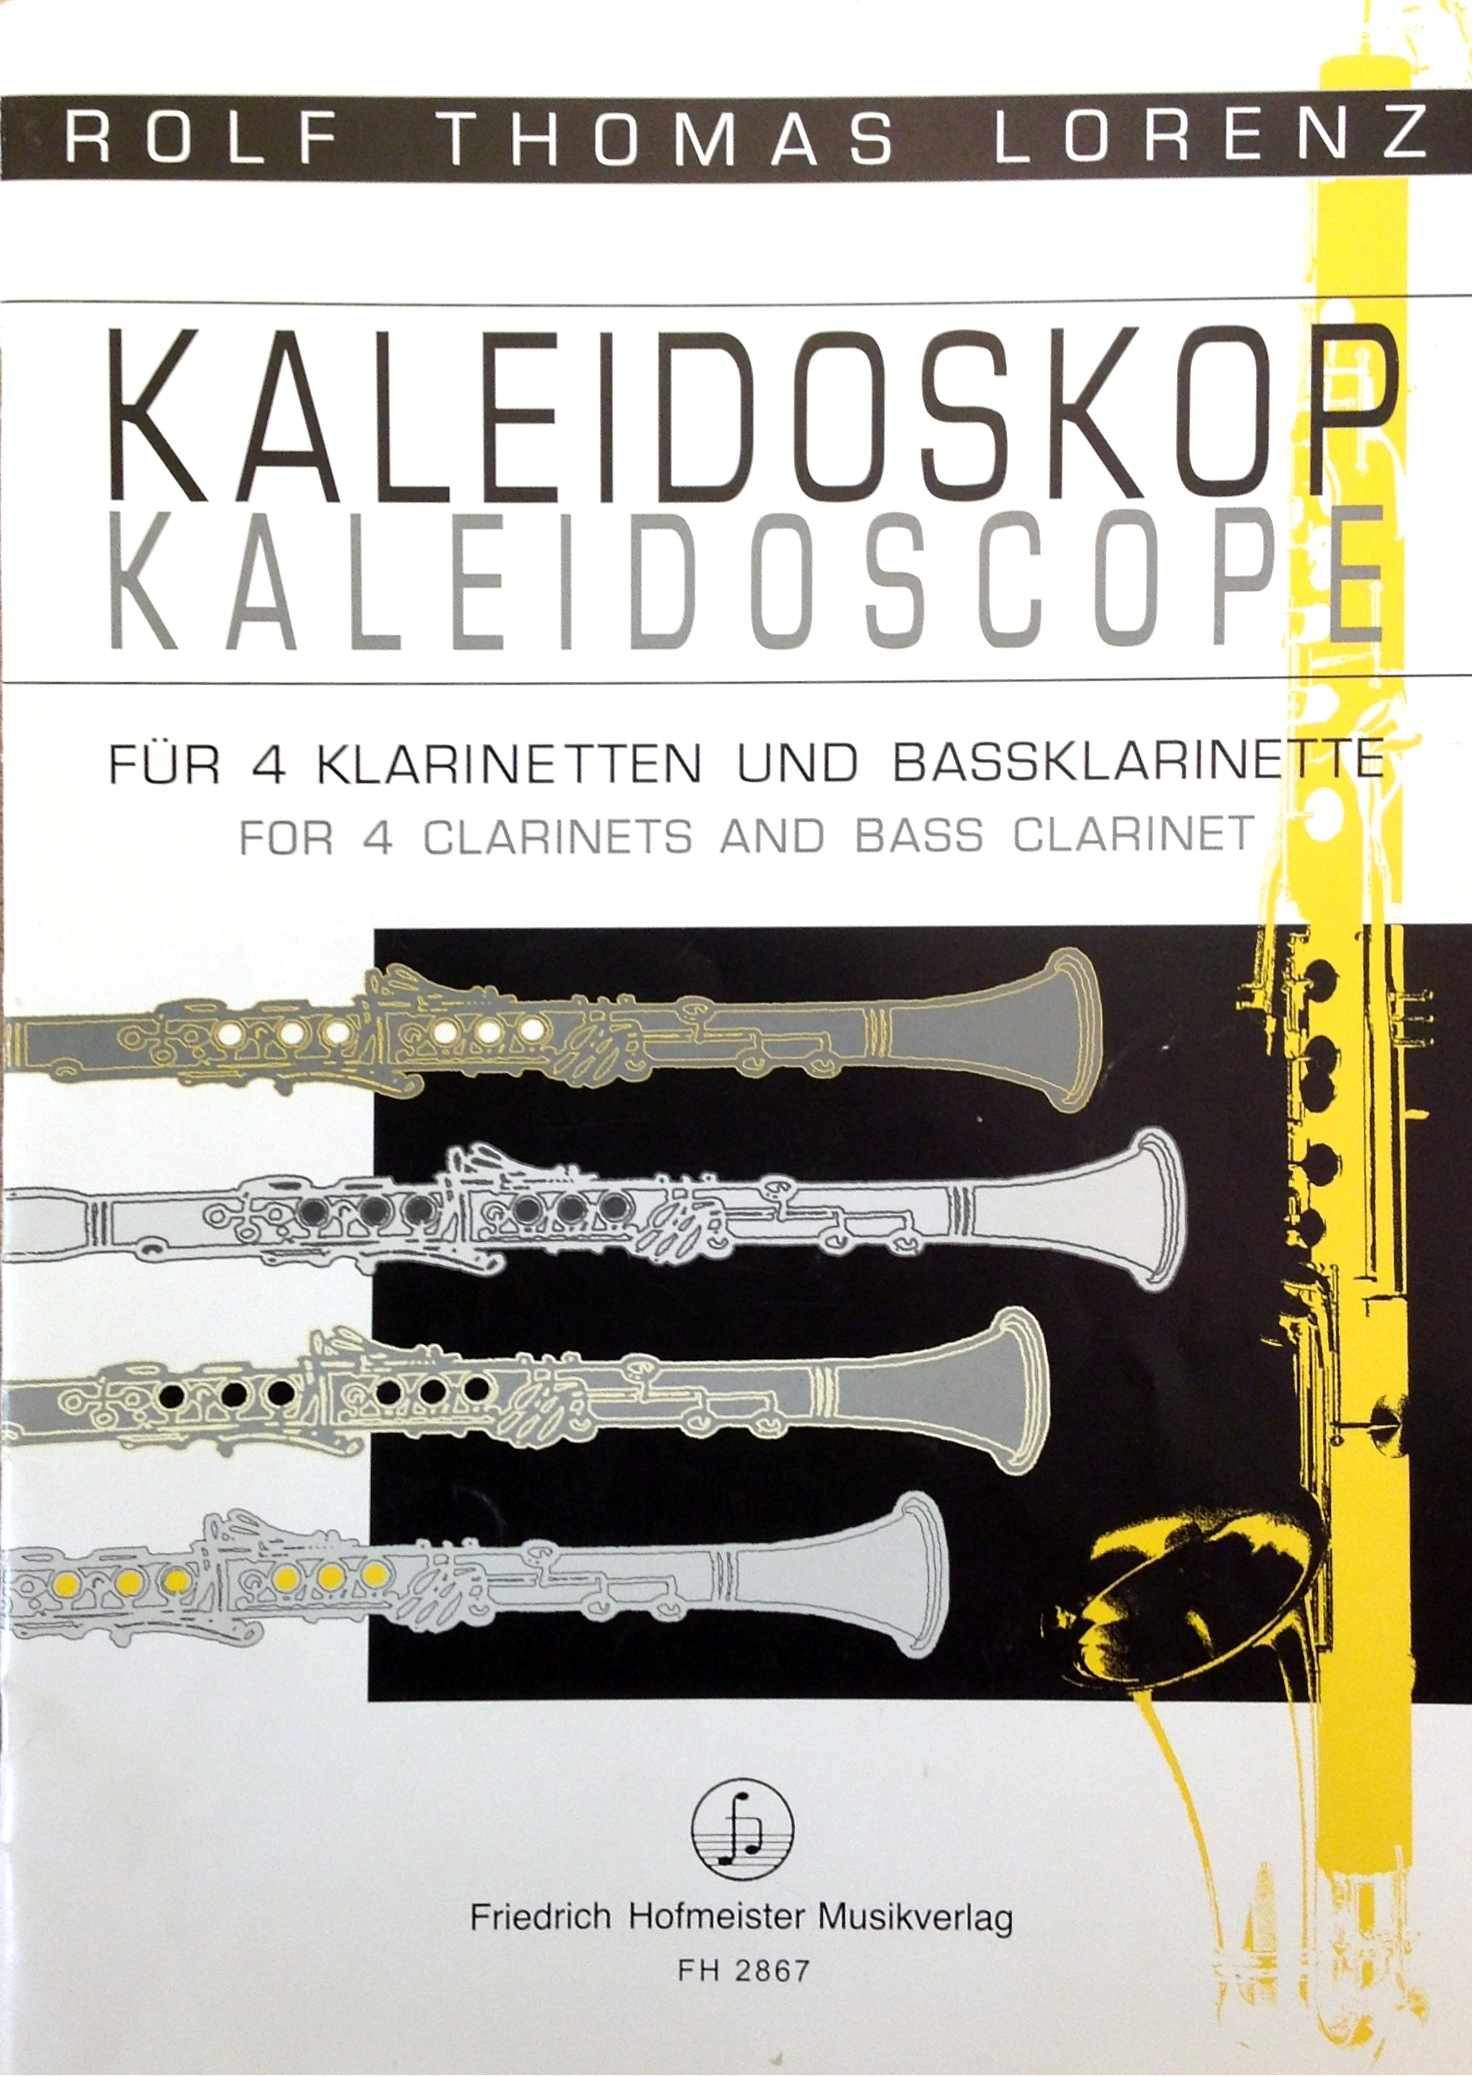 KALEIDOSCOPE score & parts